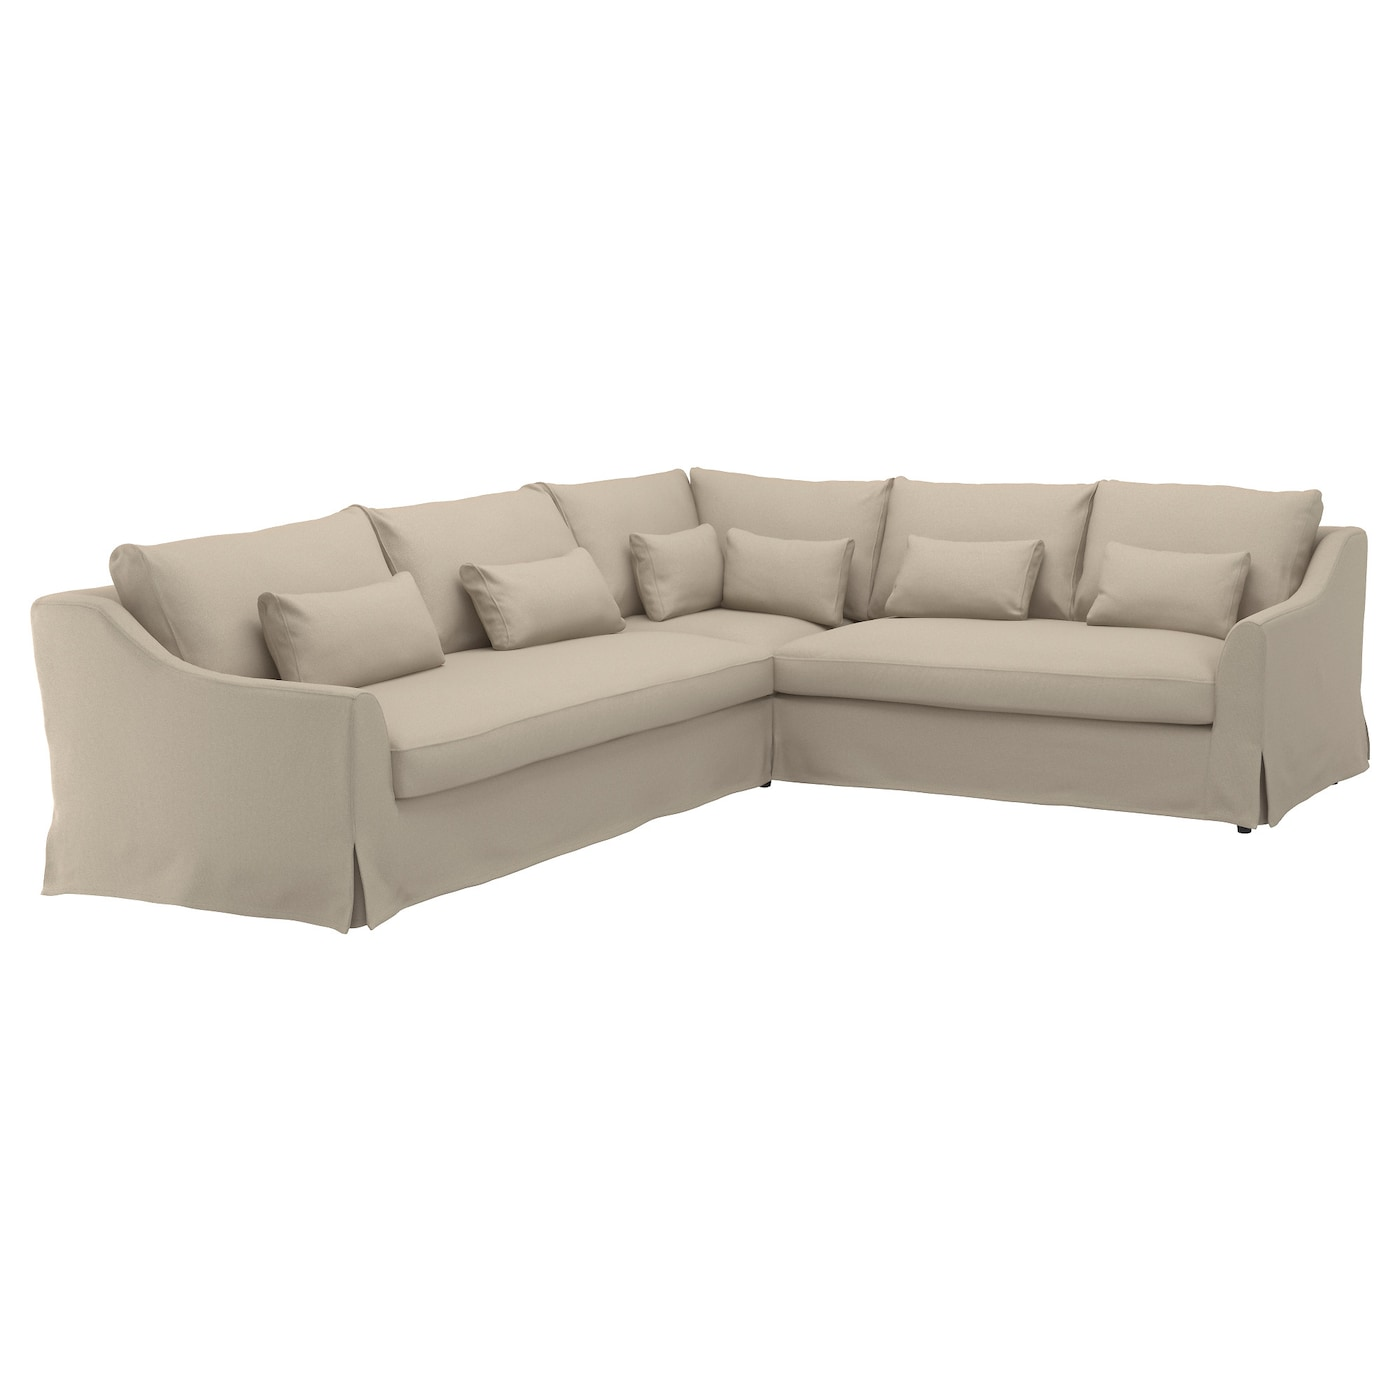 Awesome IKEA FÄRLÖV Corner Sofa 3+2 10 Year Guarantee. Read About The Terms In